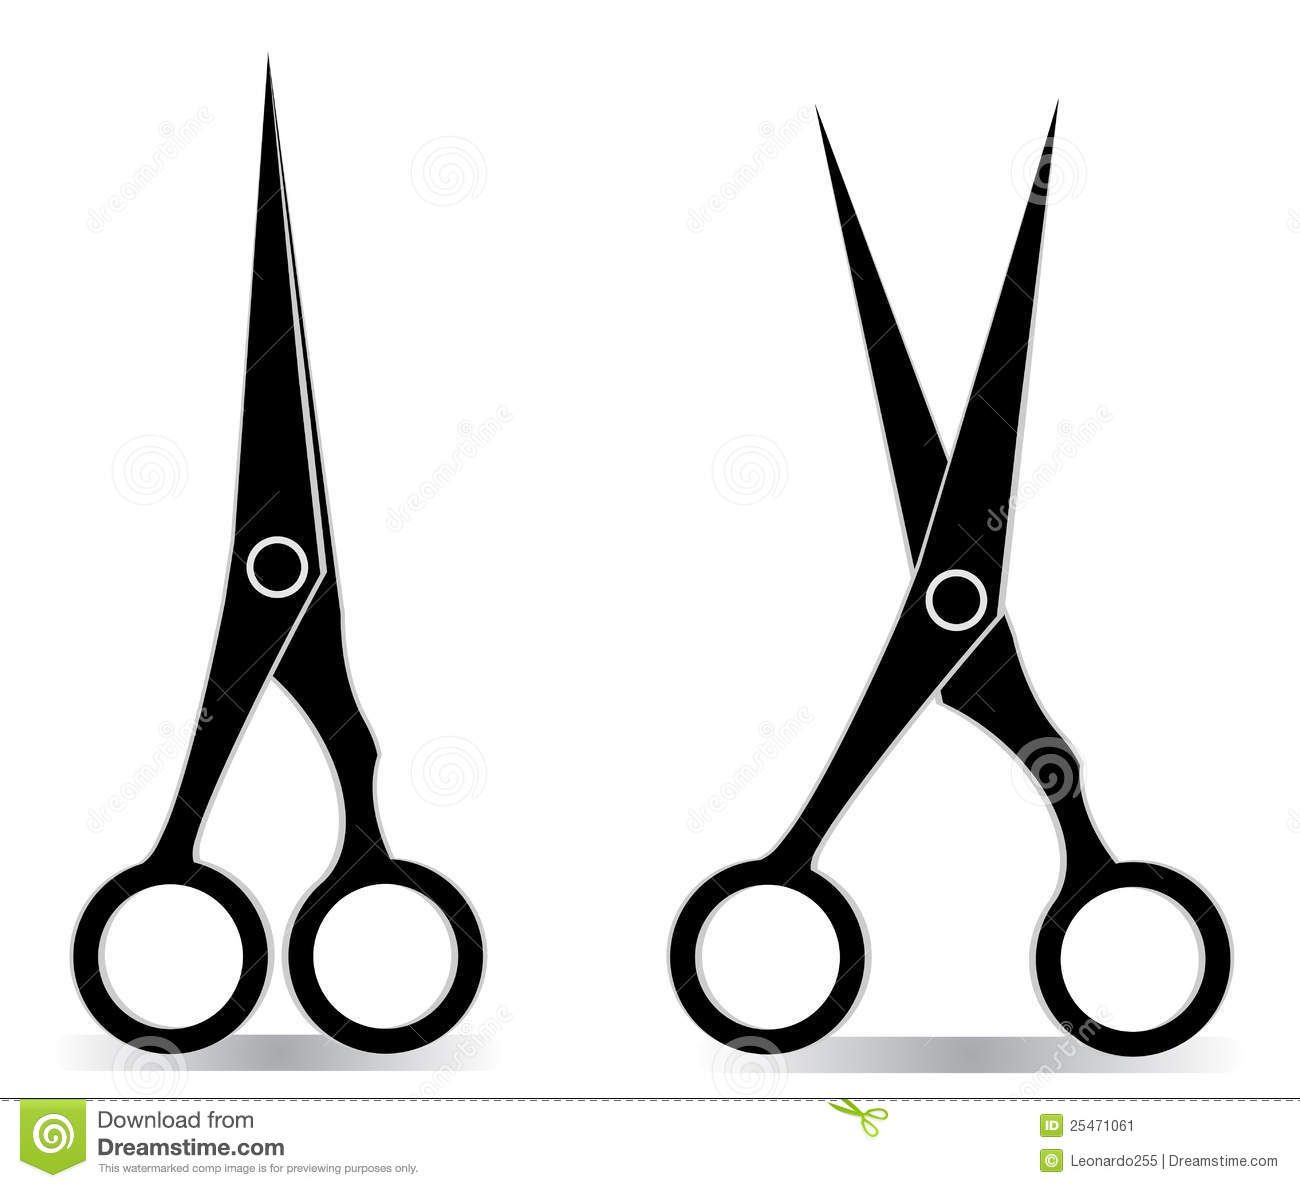 Clipart scissors fancy. Hair free download best